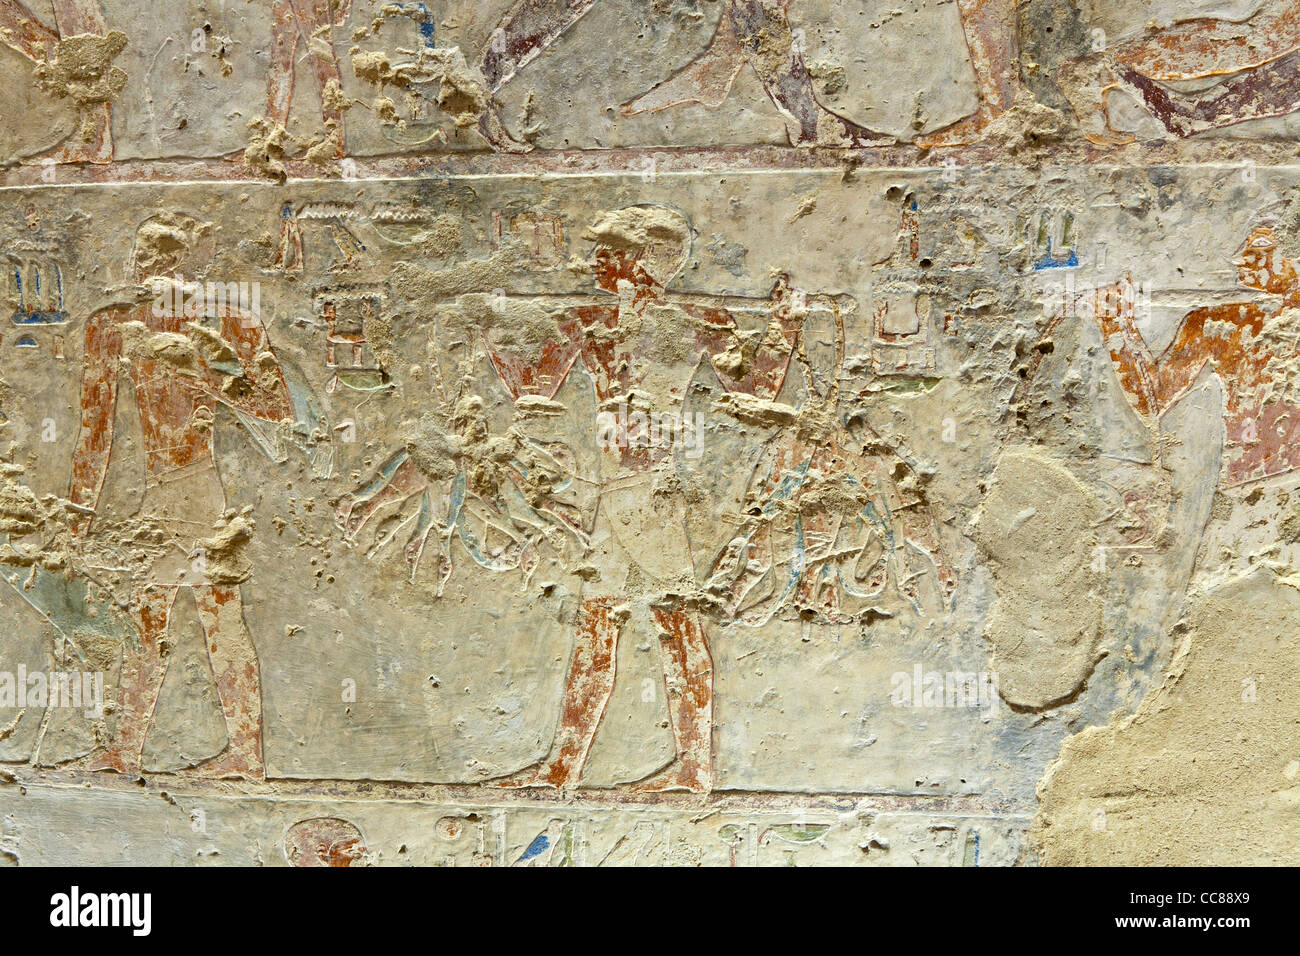 Reliefs in the Middle Kingdom tomb of Senbi Son of Ukh Hotep at Meir , North West of Asyut in Middle Egypt - Stock Image